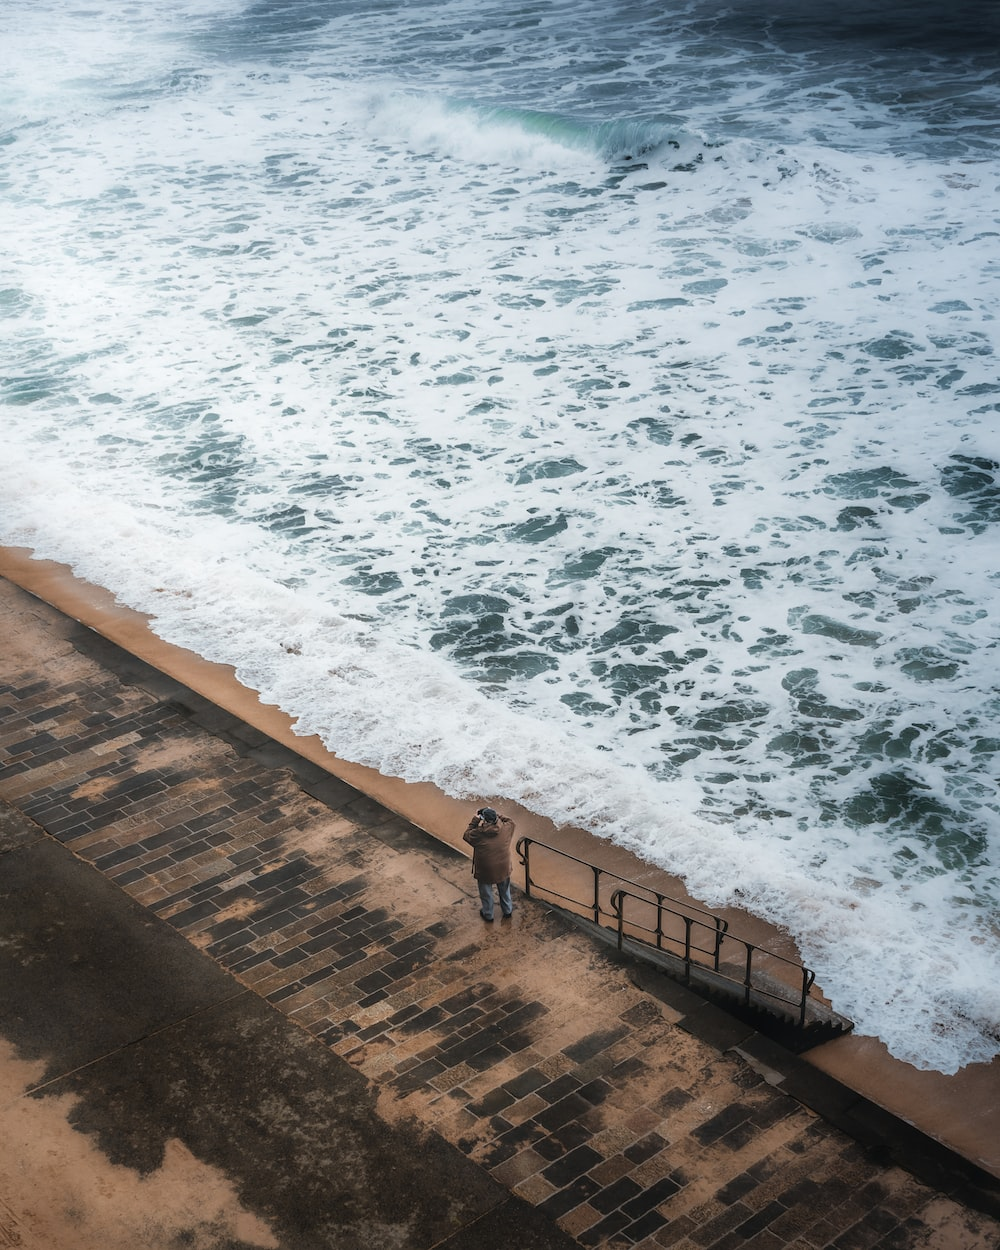 person standing on brown wooden dock near ocean waves during daytime